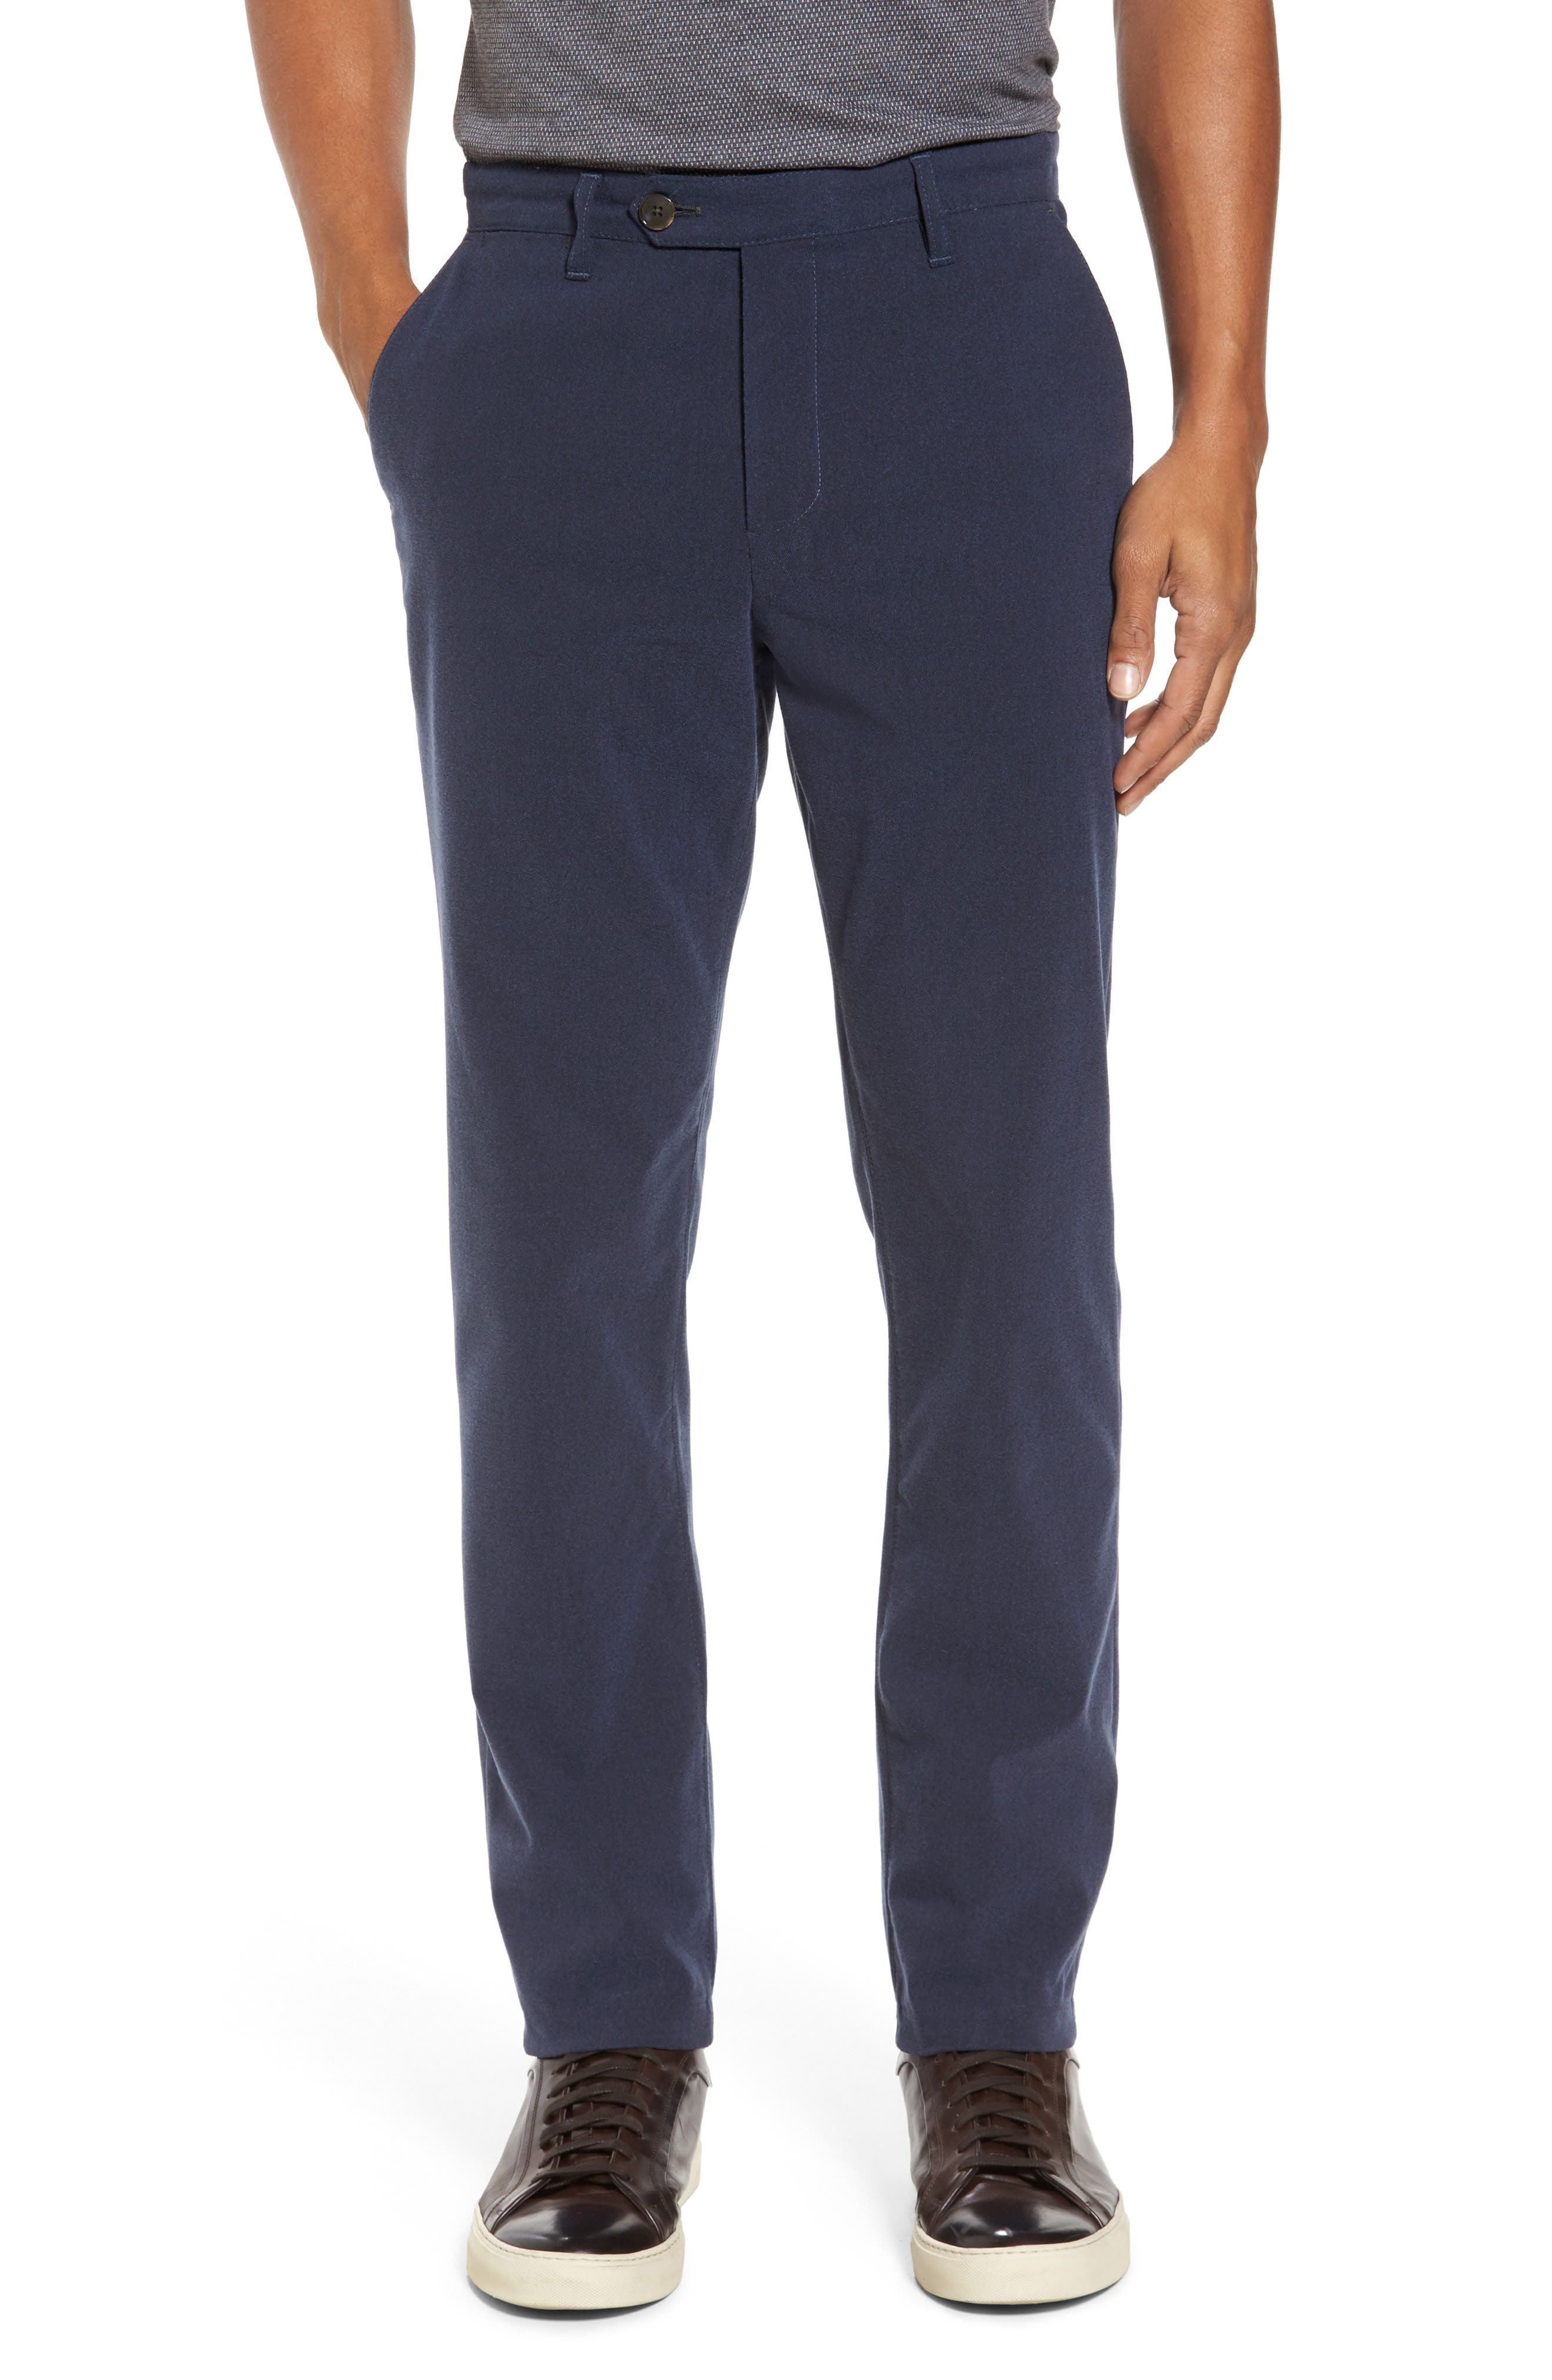 Main Image - Ted Baker London Modern Slim Fit Trousers (Tall)